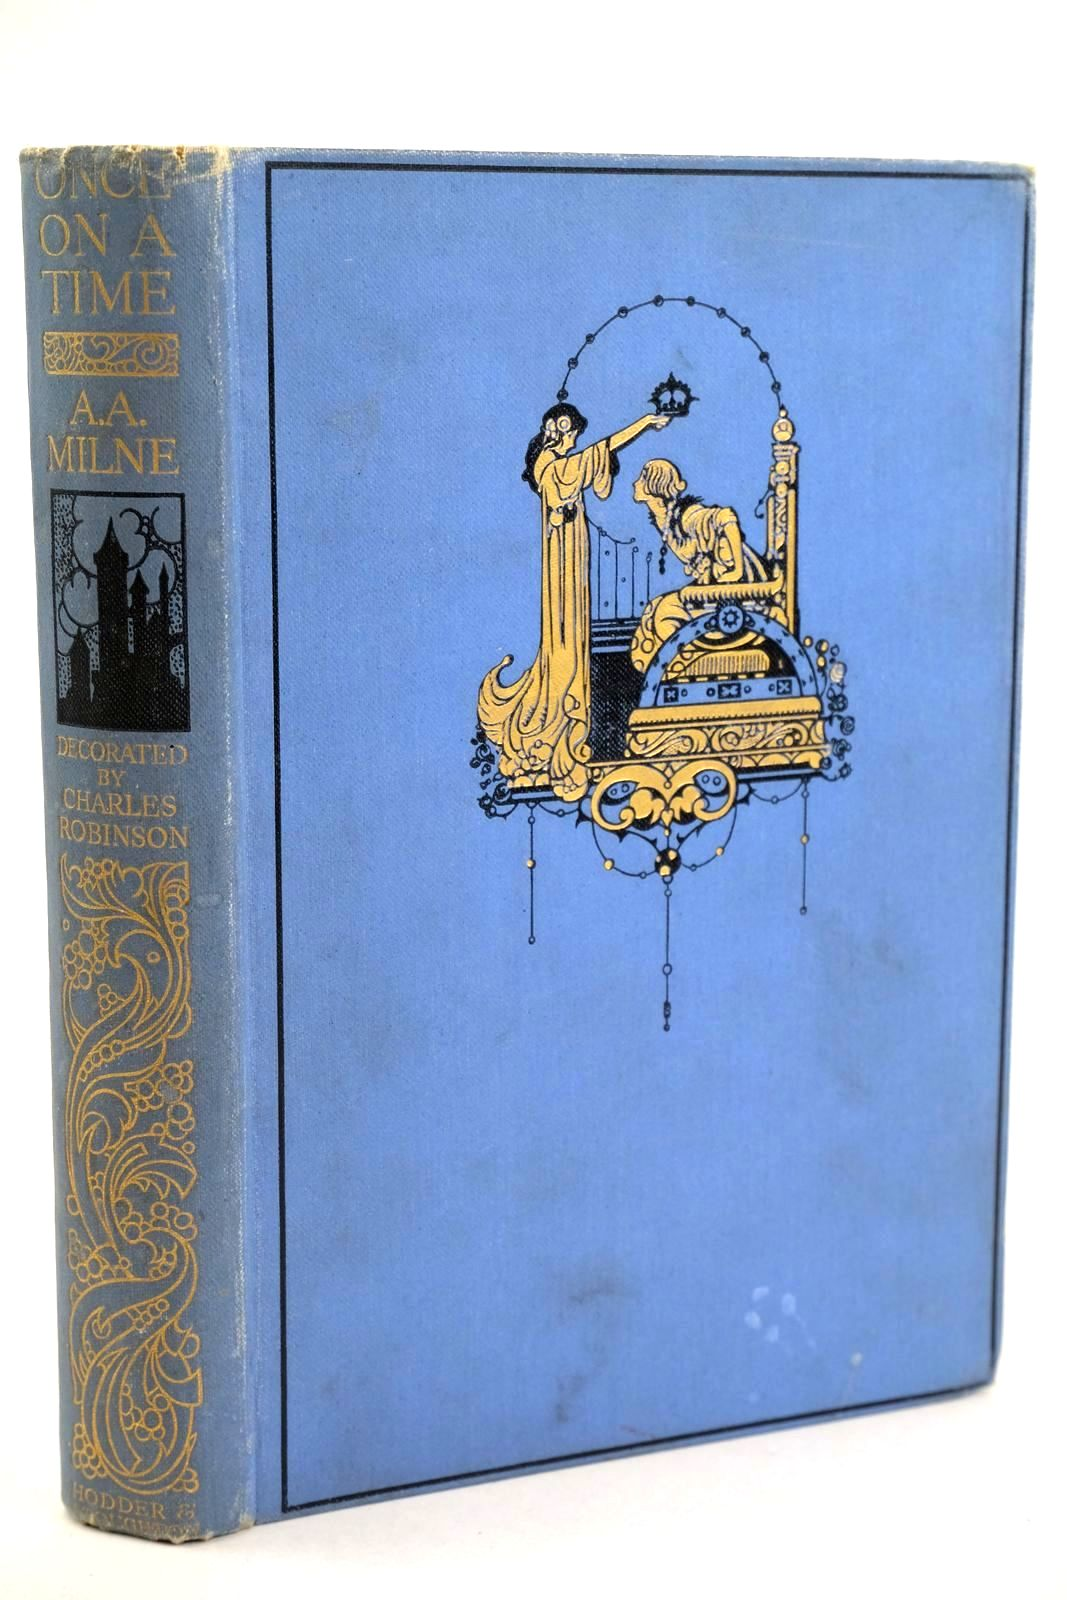 Photo of ONCE ON A TIME written by Milne, A.A. illustrated by Robinson, Charles published by Hodder & Stoughton (STOCK CODE: 1318903)  for sale by Stella & Rose's Books